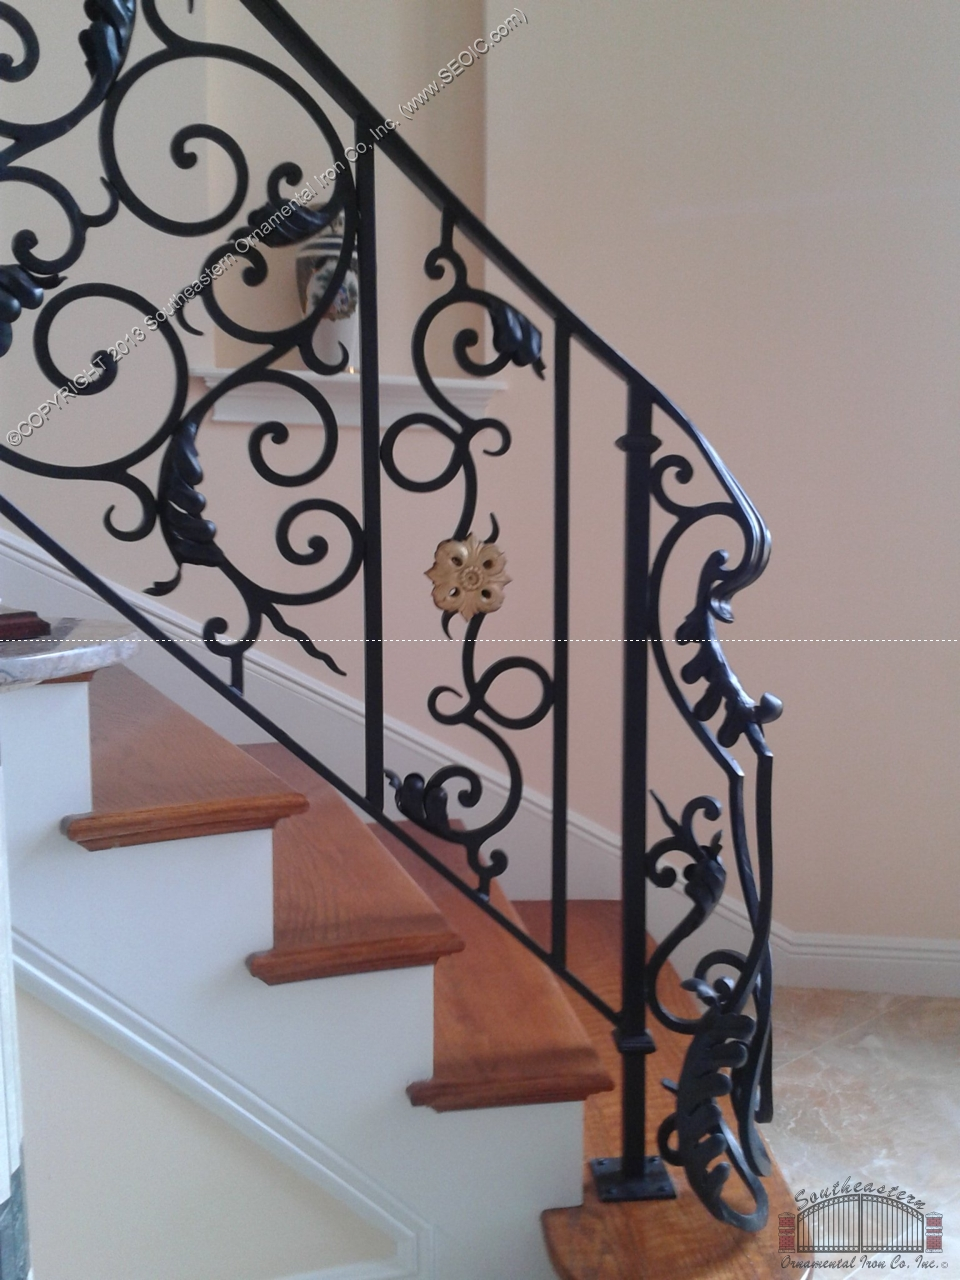 Marvelous Custom Winding Wrought Iron Stair Railing With Black Finish And Gold  Painted Rosettes. All Of Our Products Are Built And Installed Locally As  Well As Built ...